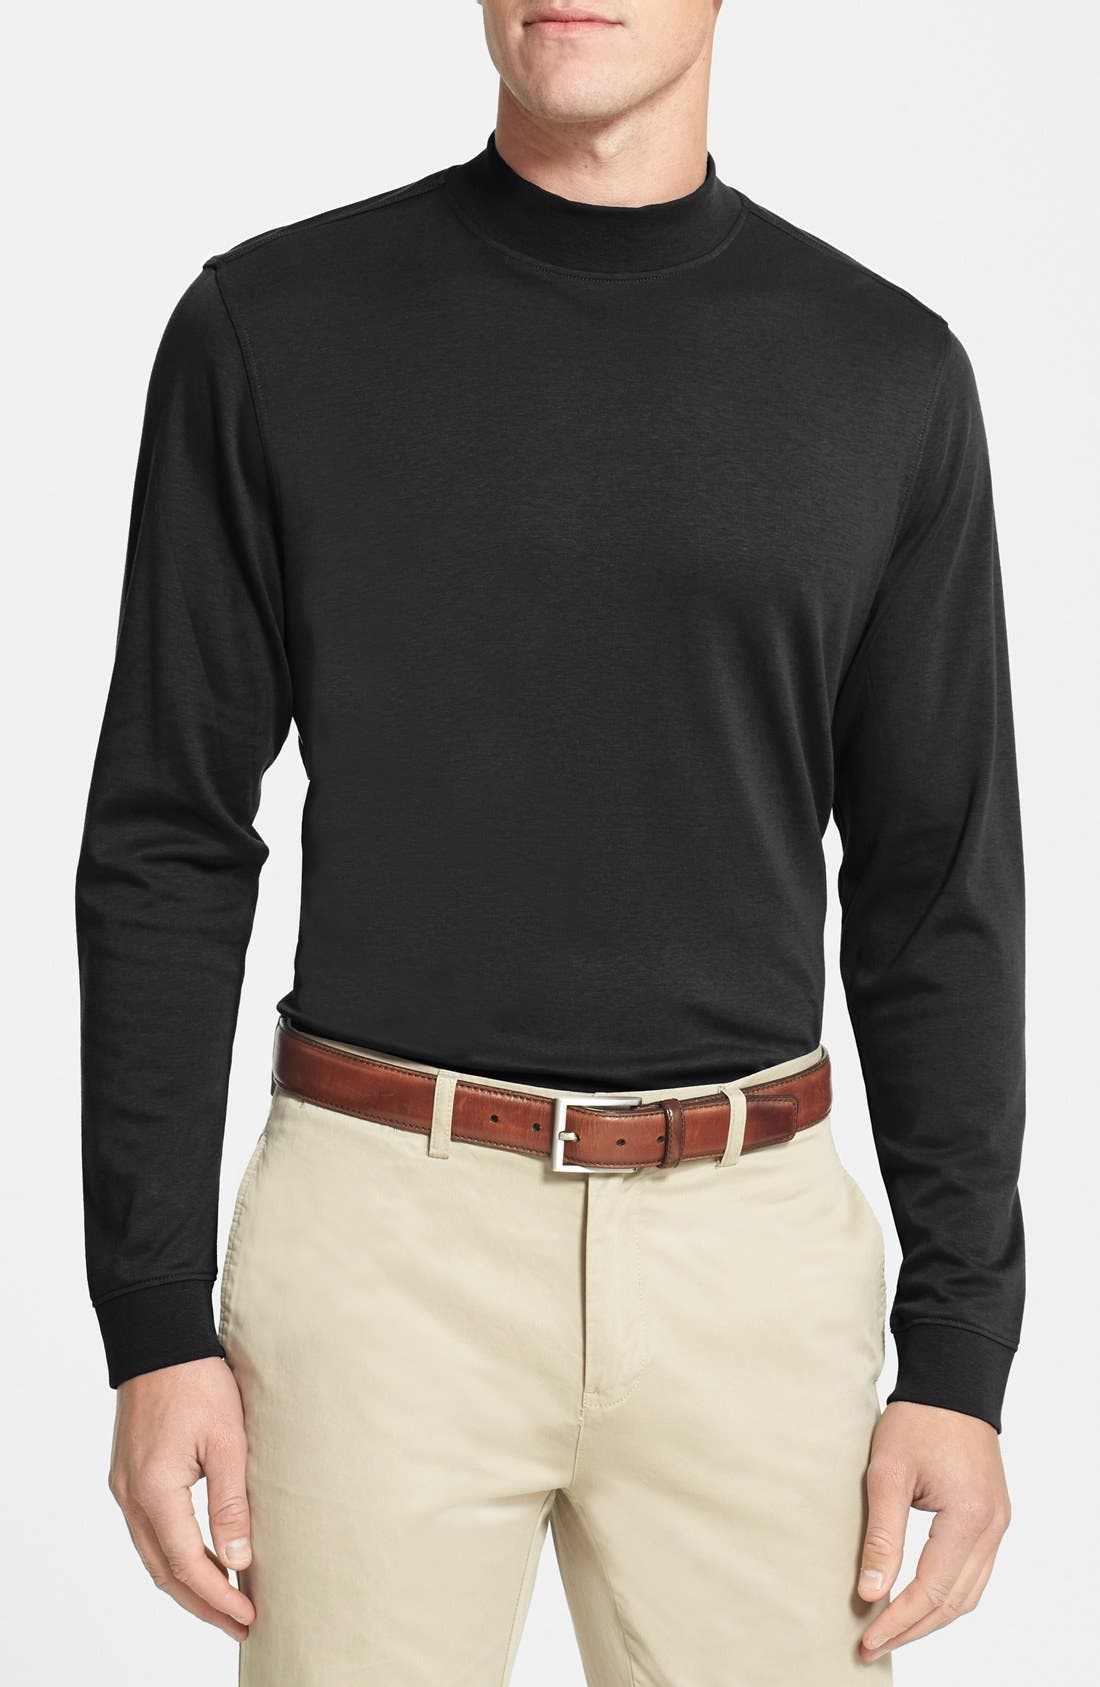 CUTTER & BUCK 'Belfair' Long Sleeve Mock Neck